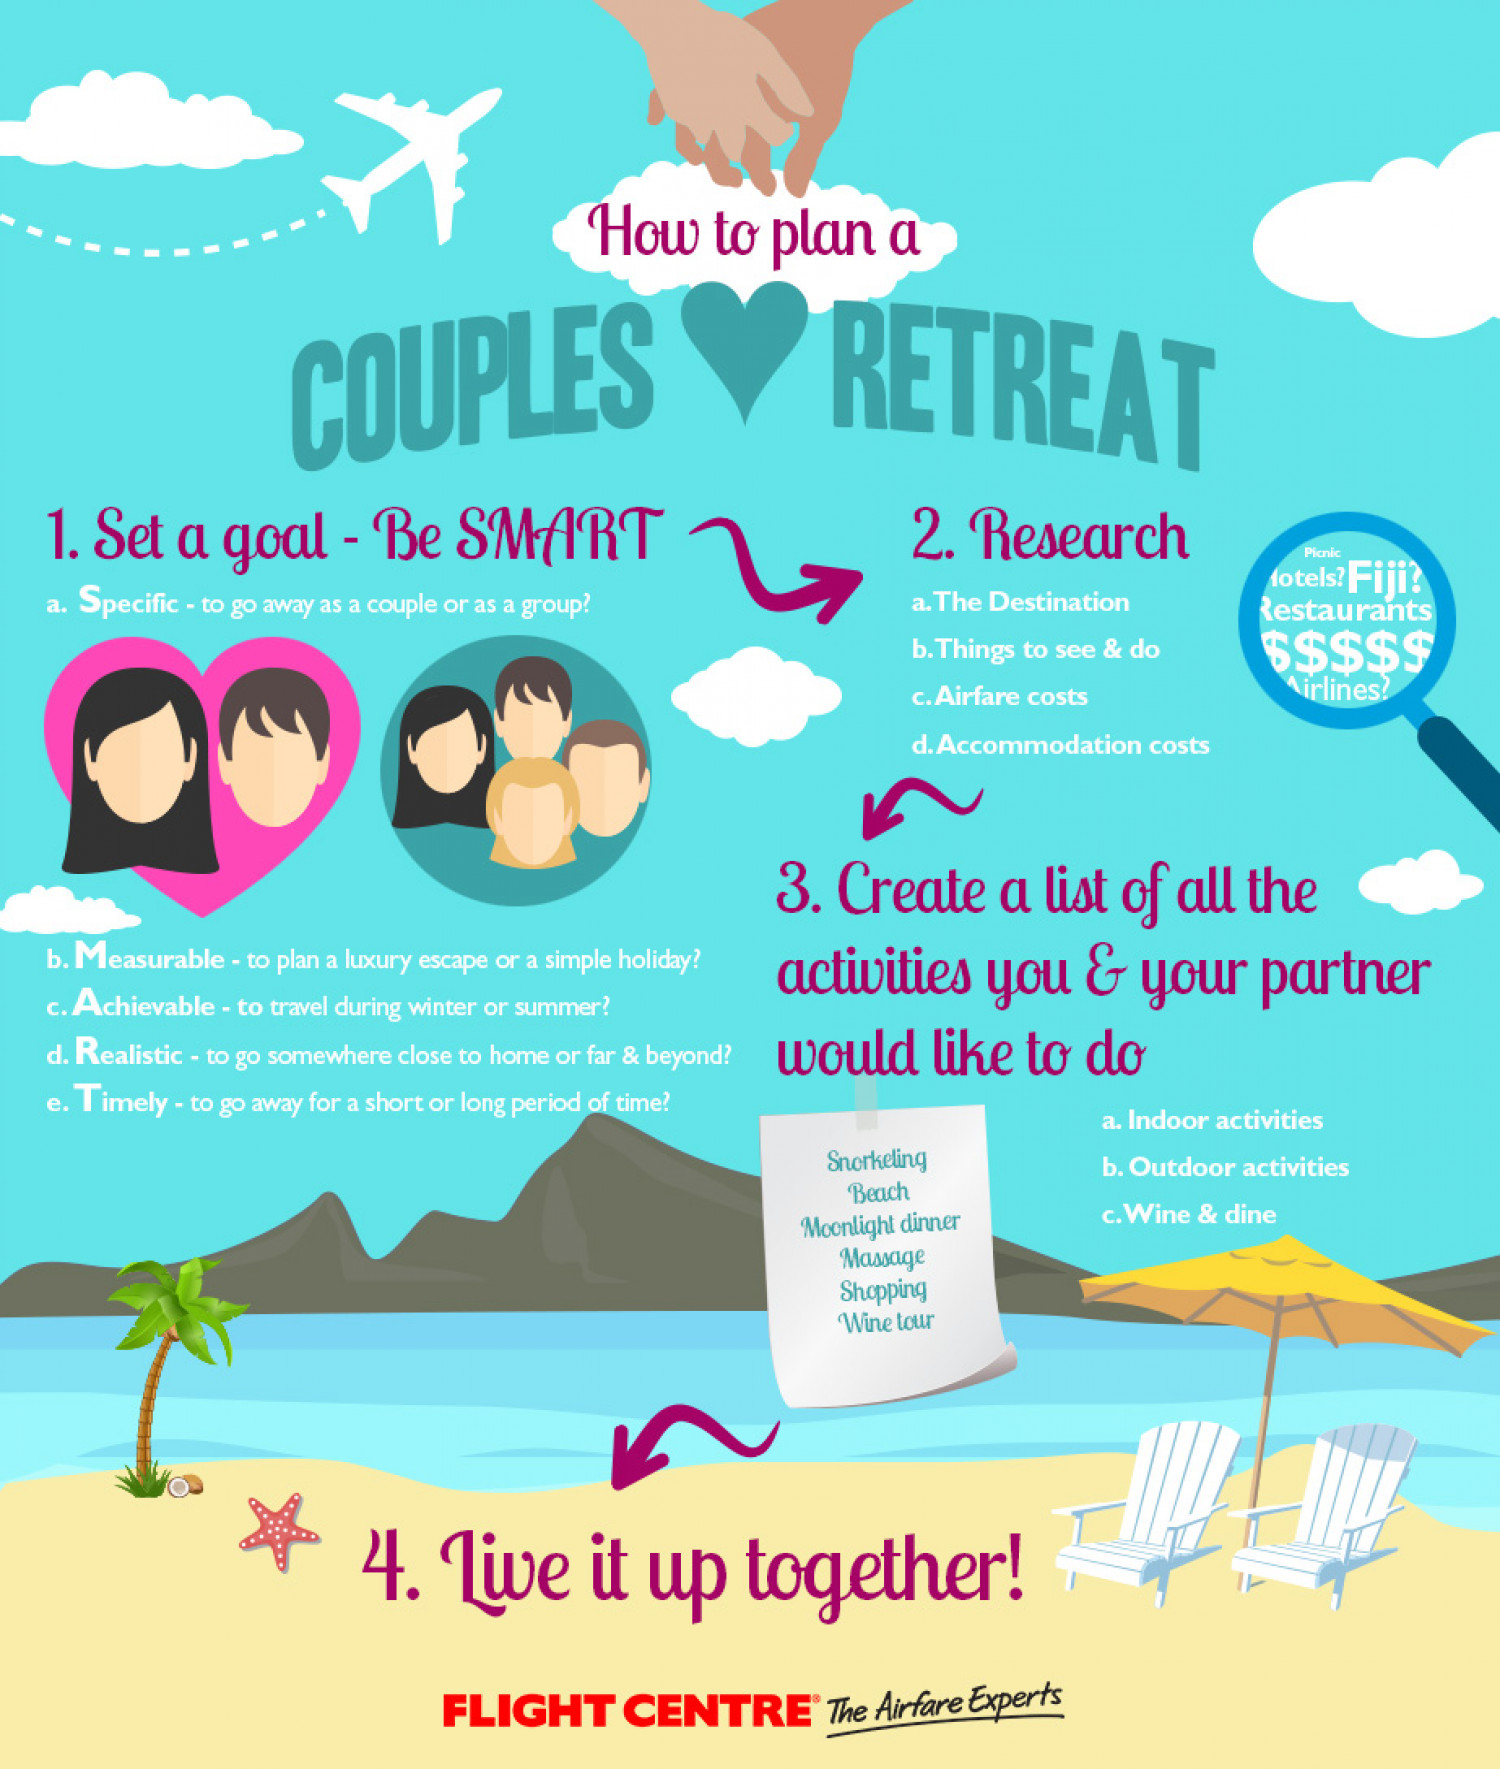 How to Plan a Couples Retreat Infographic